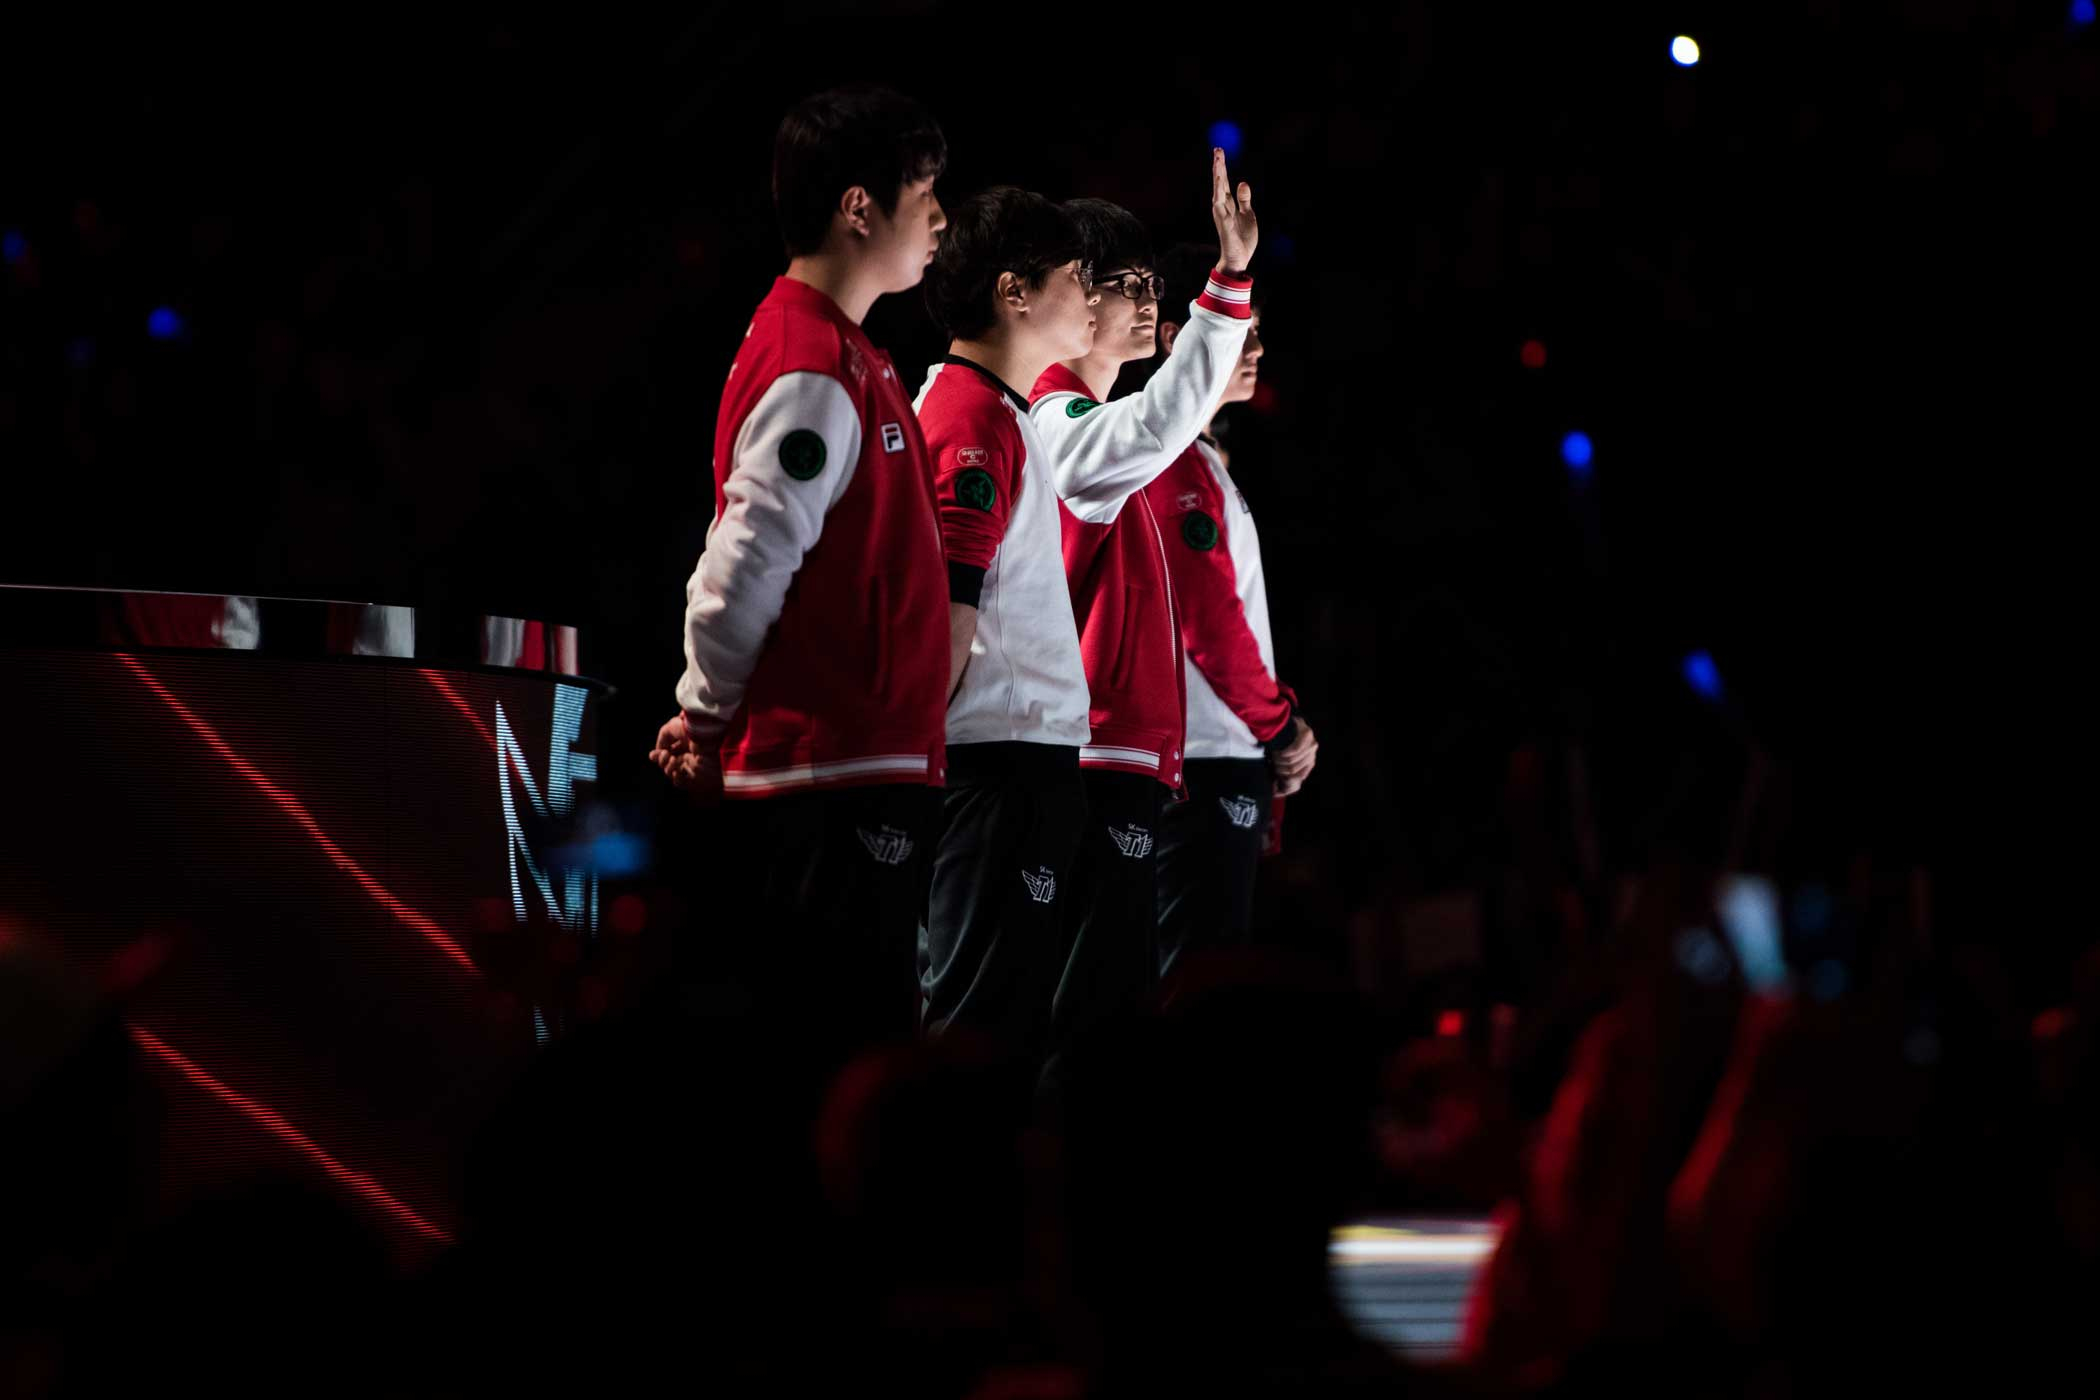 Lee  Faker  Sang-hyeok, second from right, potentially the greatest player in the history of League of Legends, waves to the crowd with his teammates on SK Telecom T1.